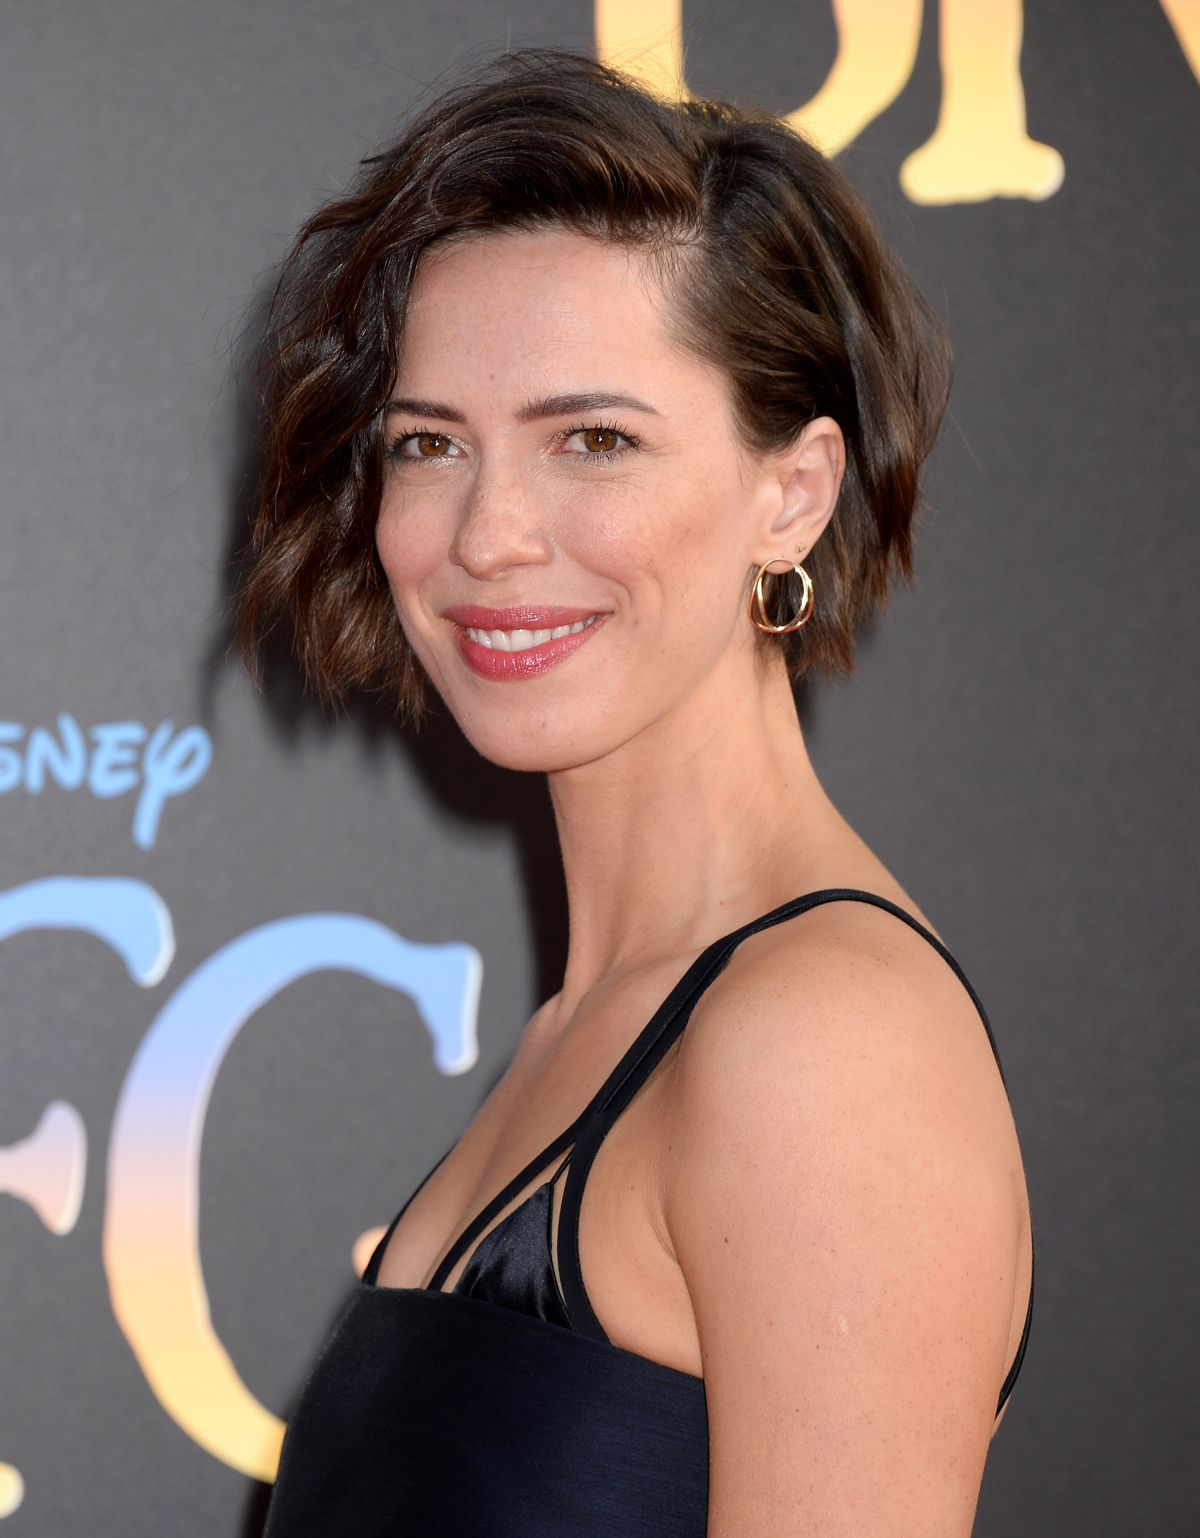 REBECCA HALL at 'The BFG' Premiere in Hollywood 06/21/2016 ...